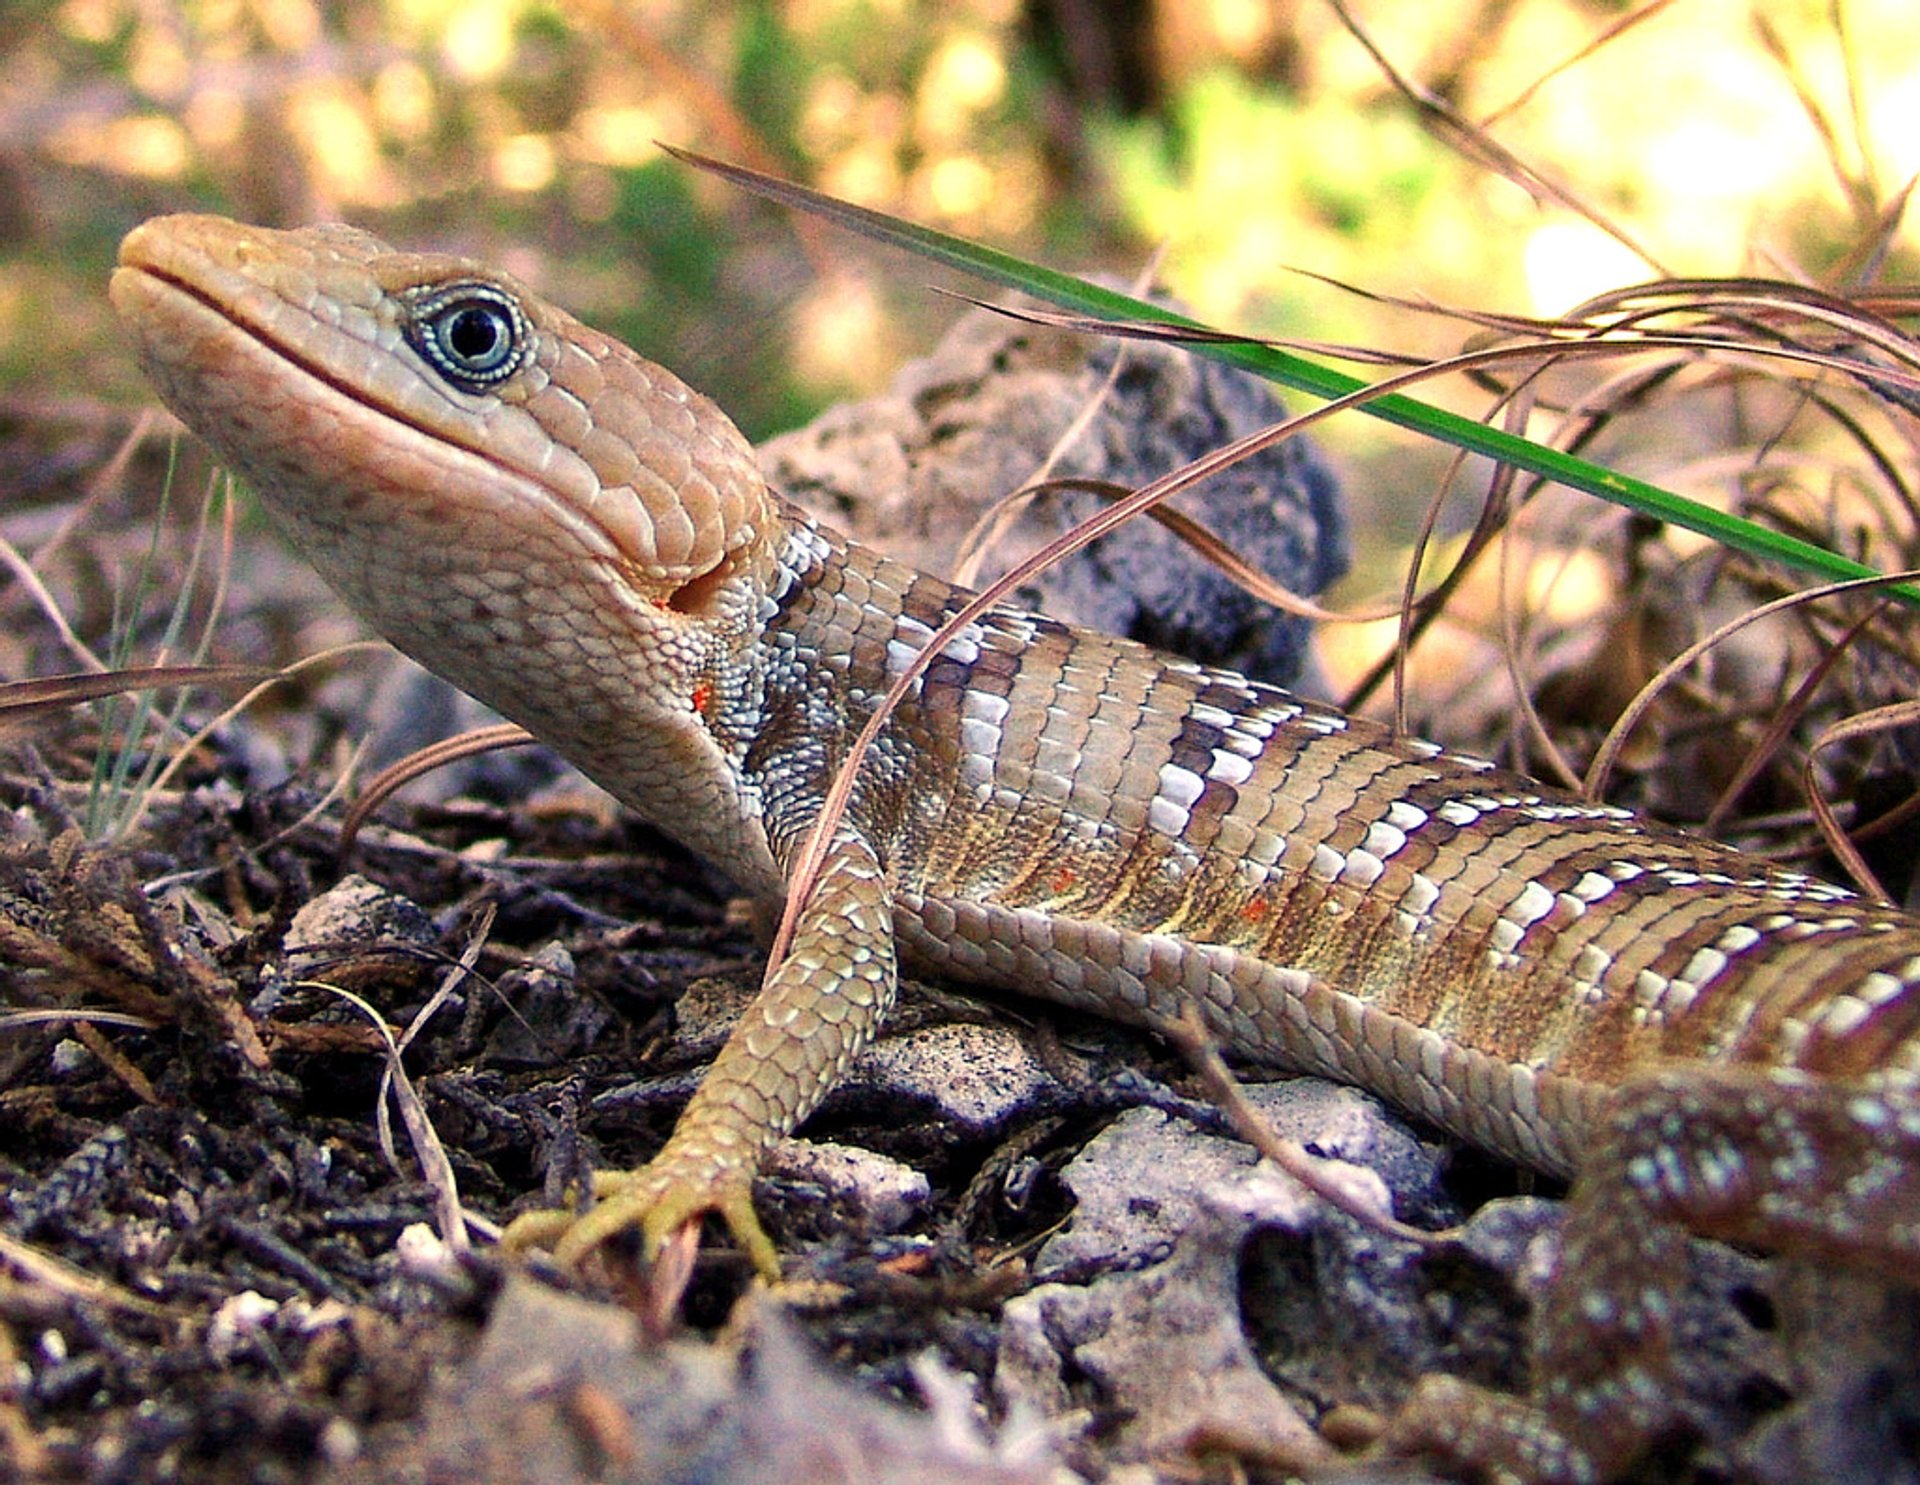 Texas Alligator Lizard 2020